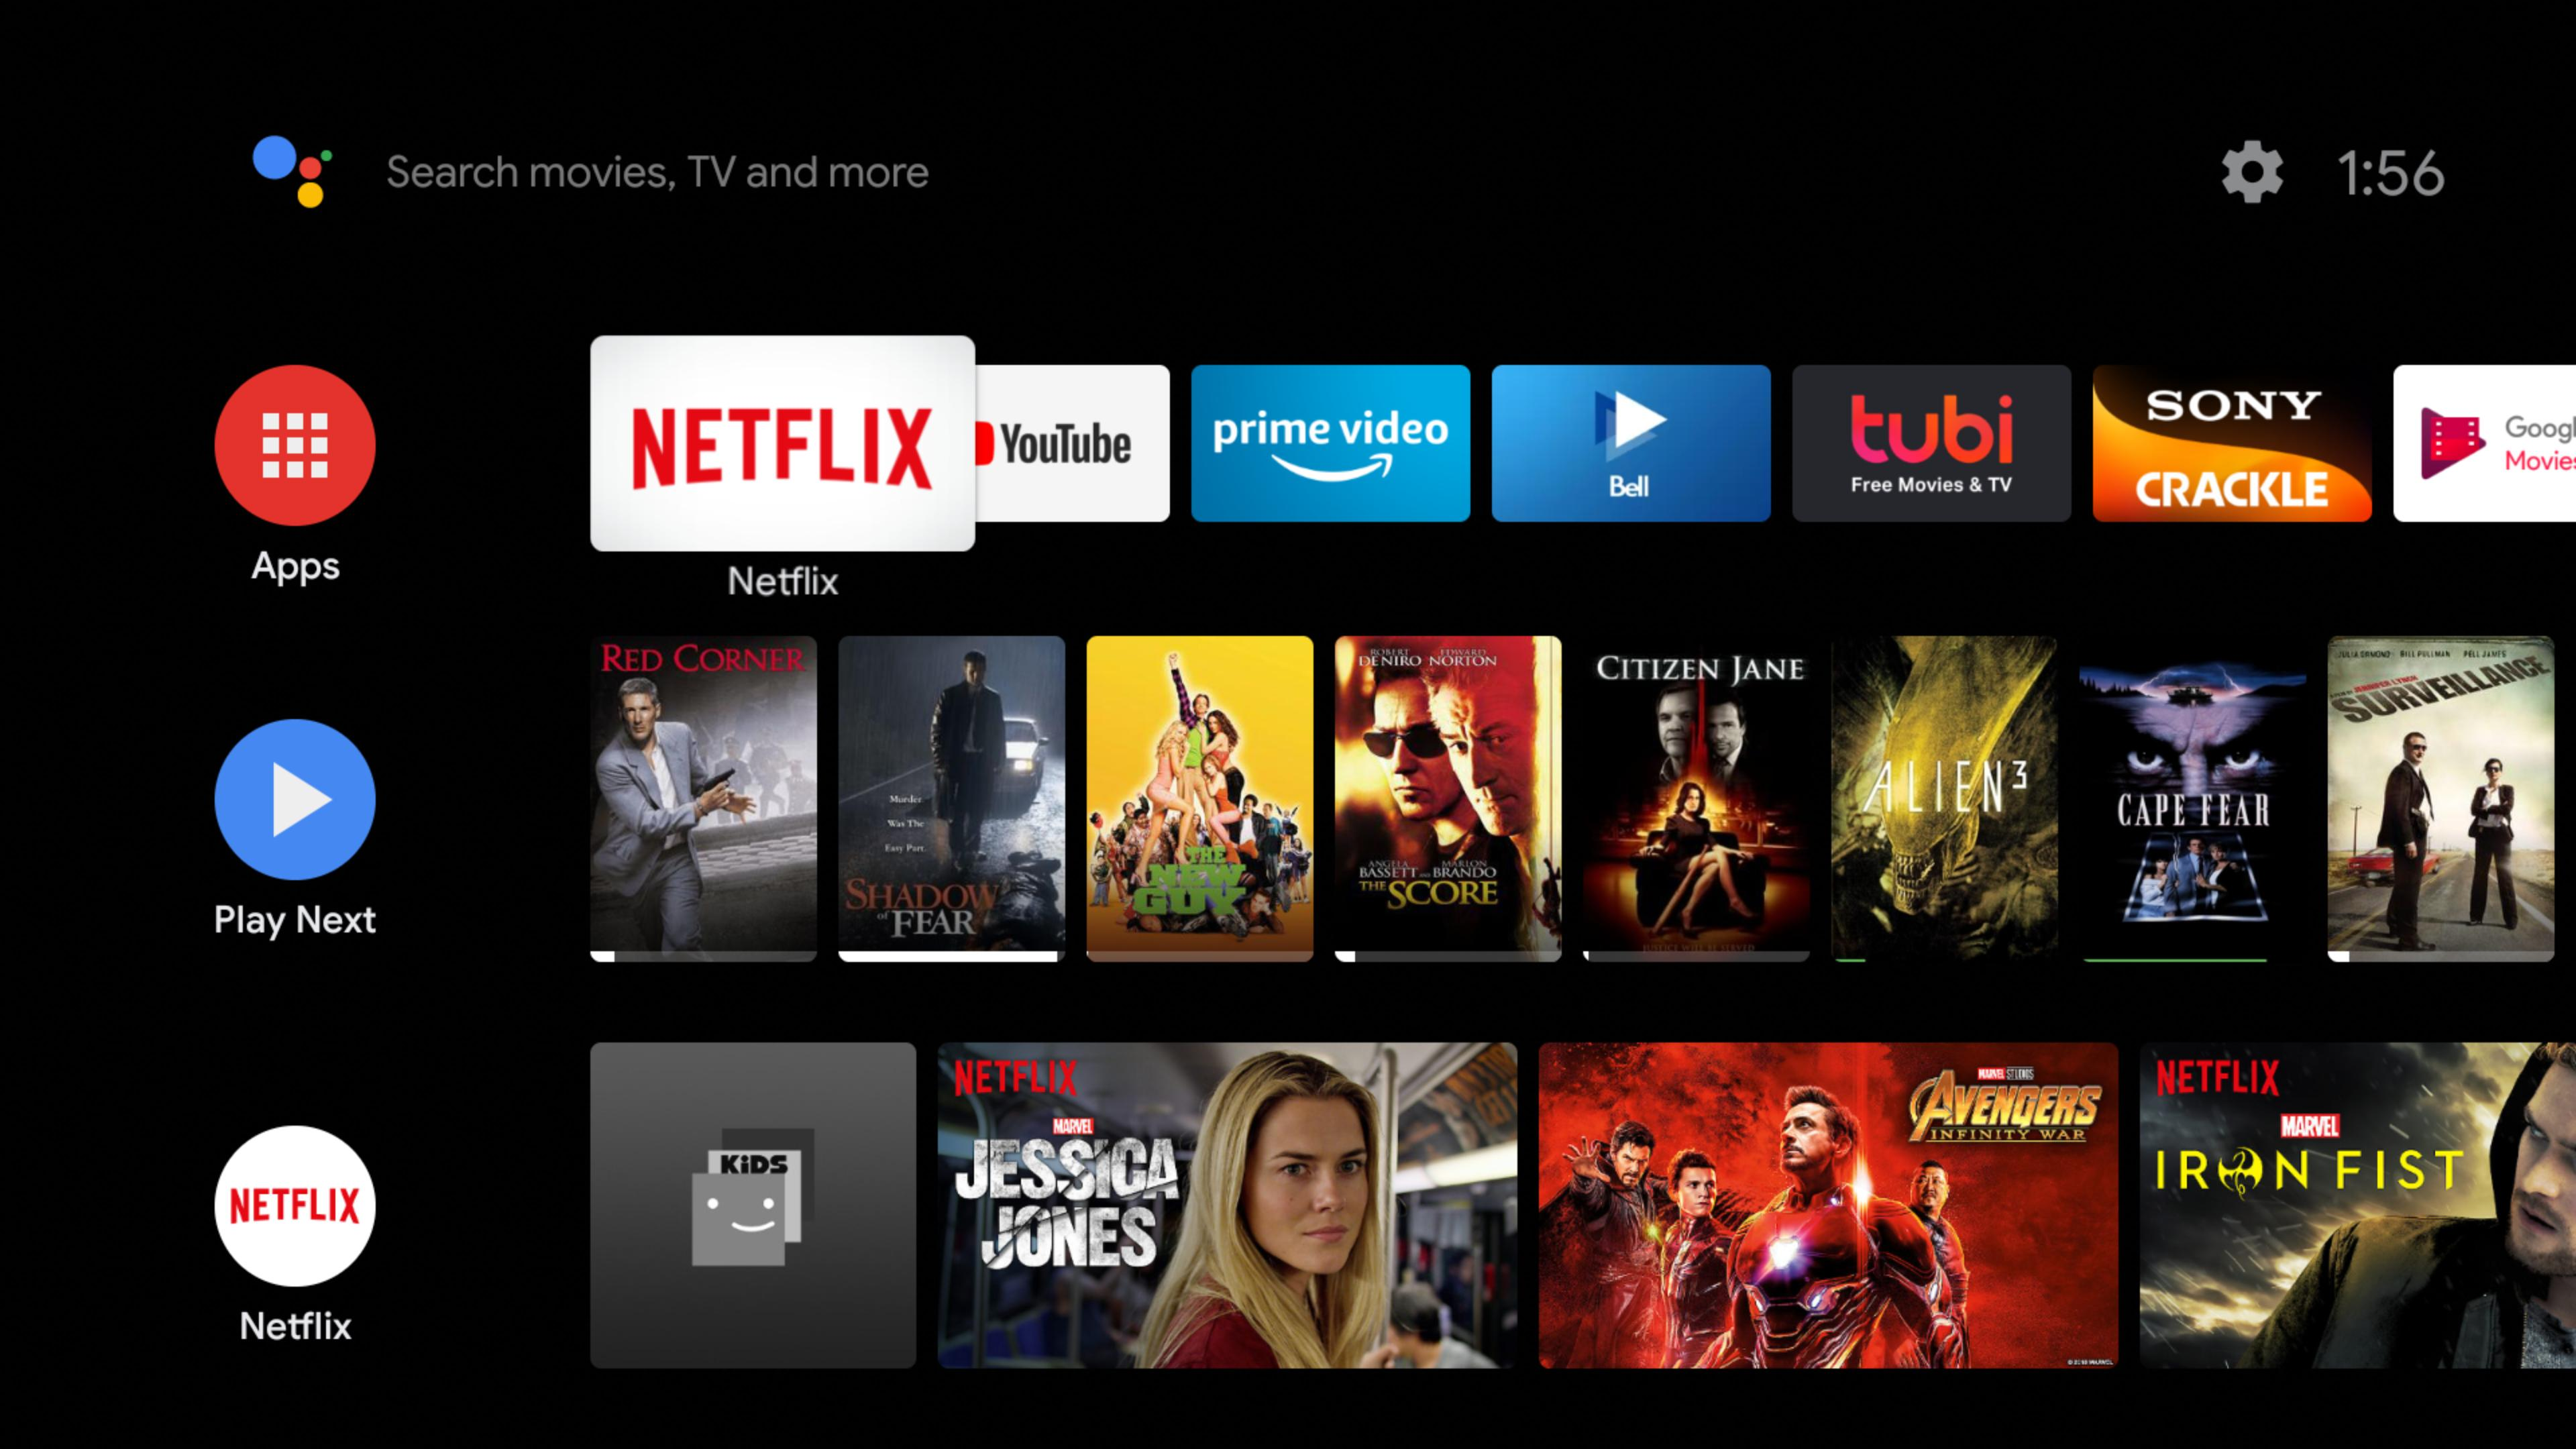 Android TV's interface is its best feature — don't ruin it - 9to5Google